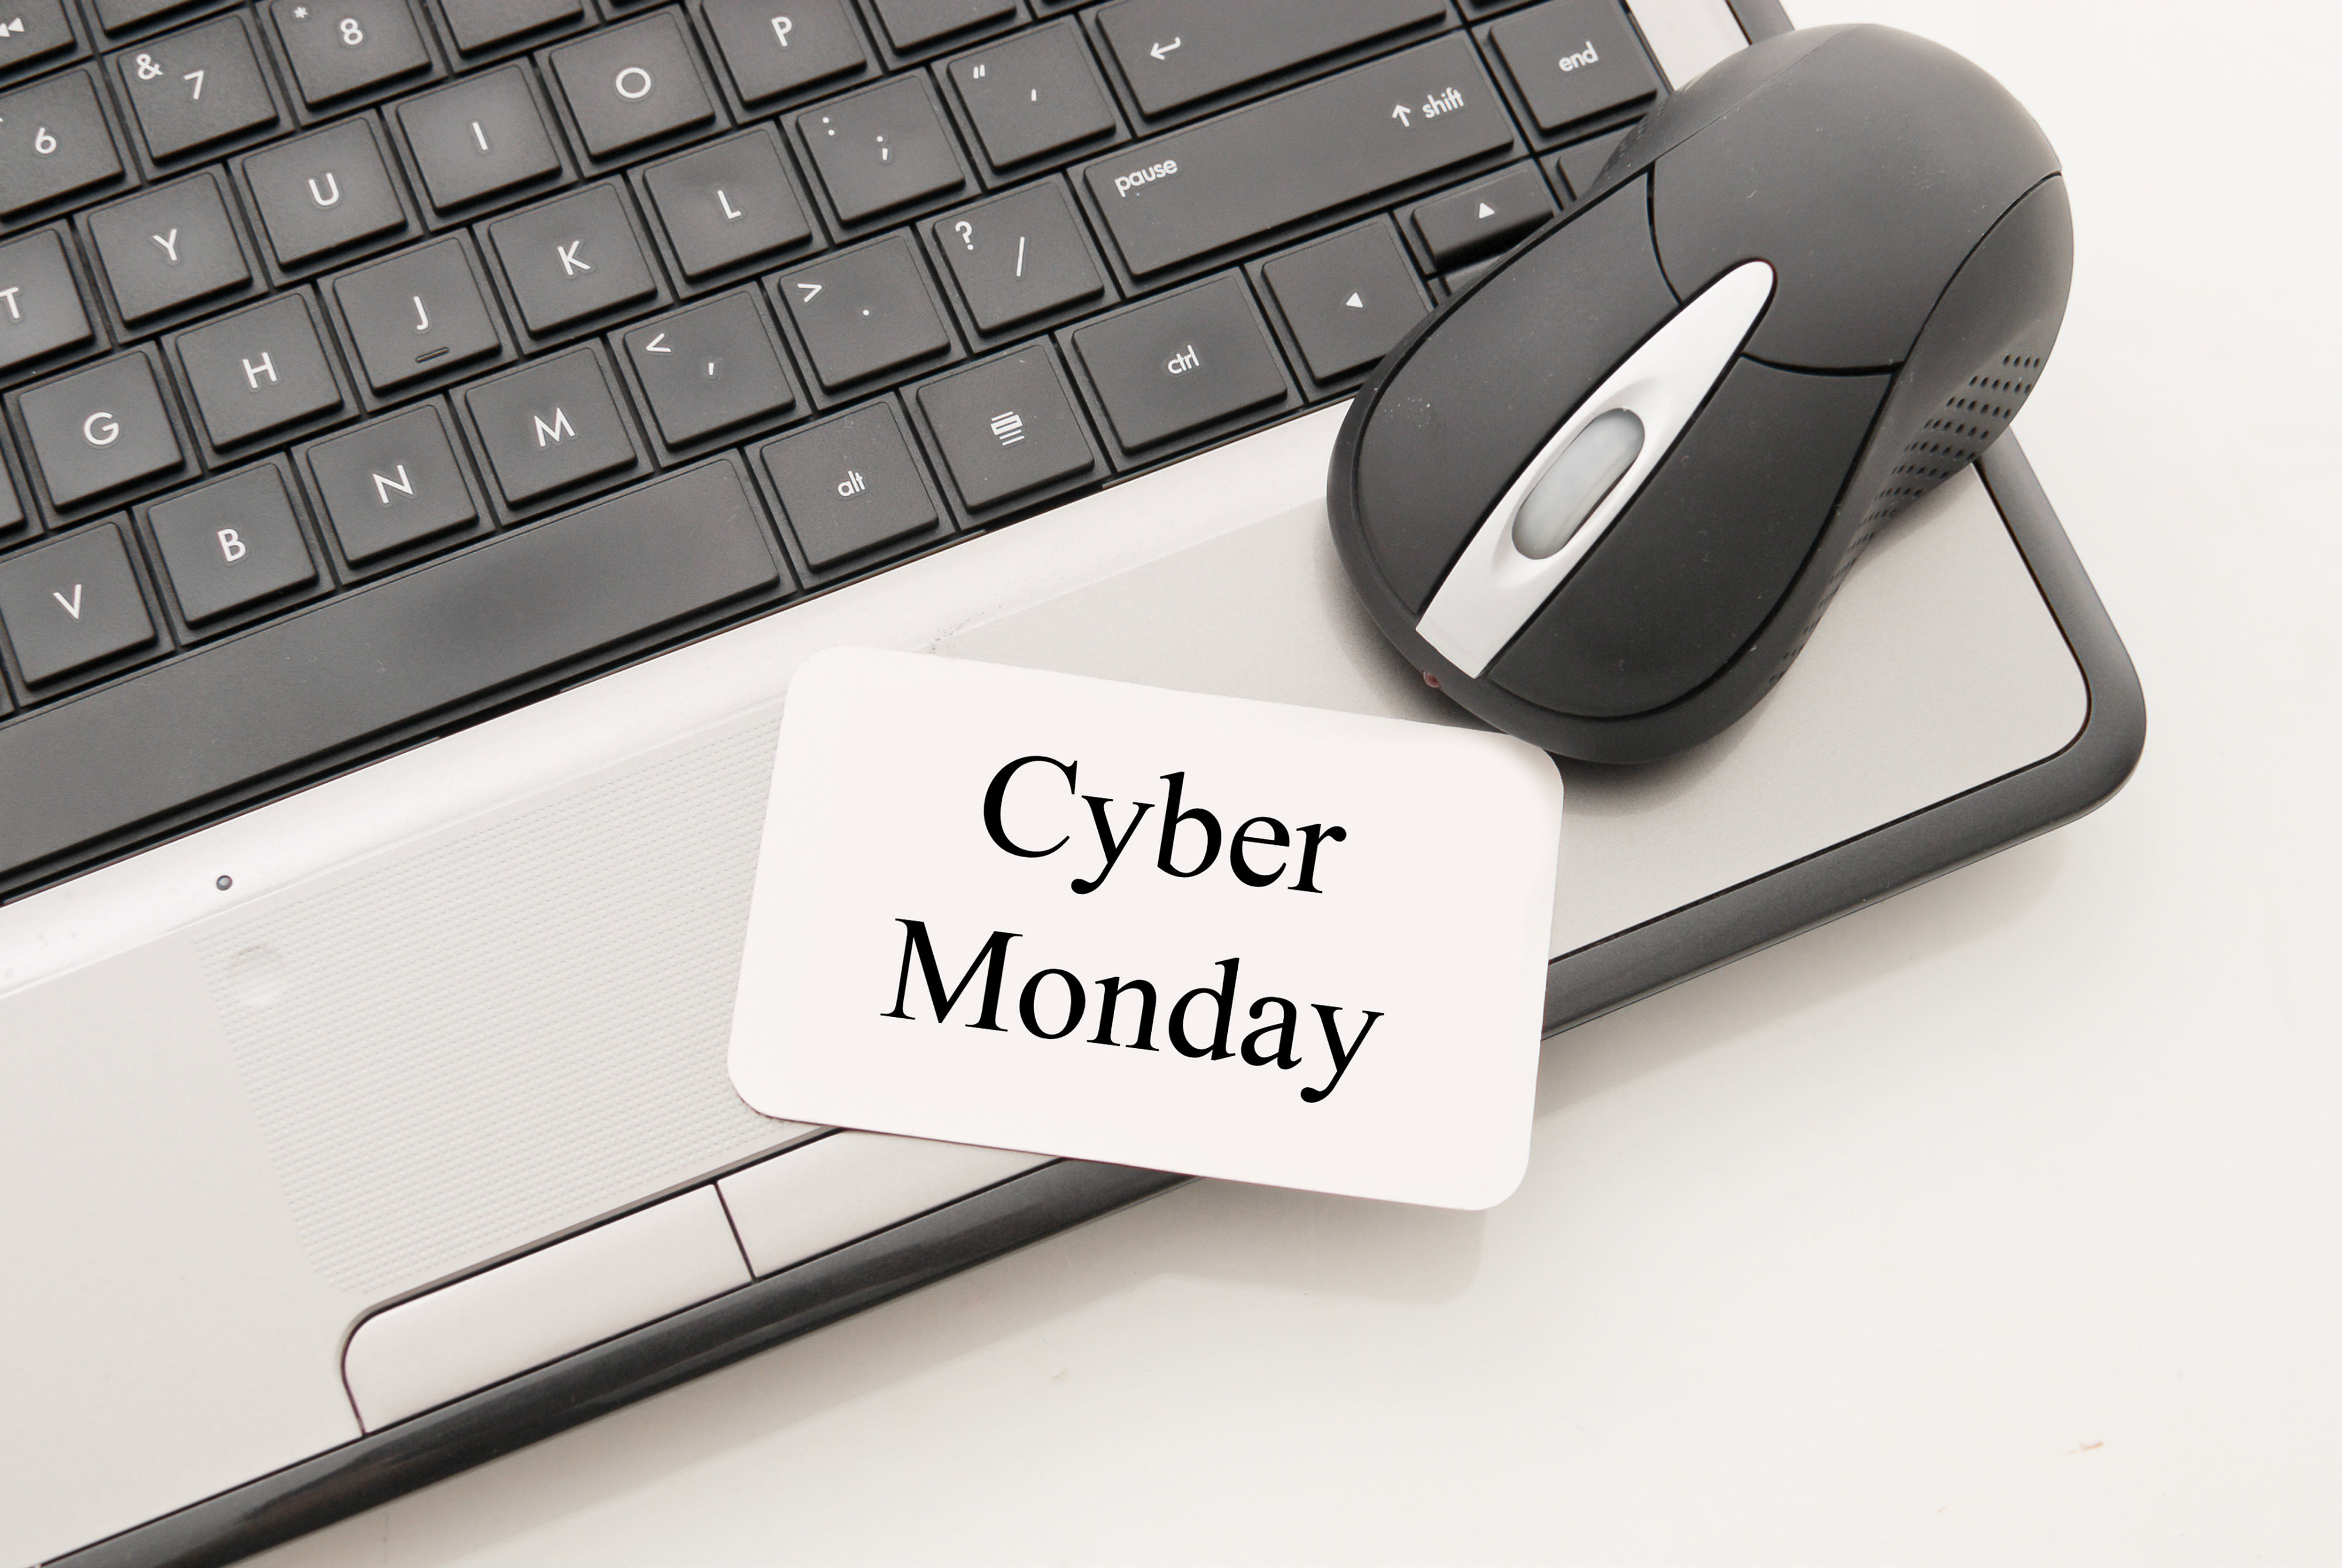 Top 6 Sites To Visit For Cyber Monday Deals Reship Com Blog Bringing The World To Your Door